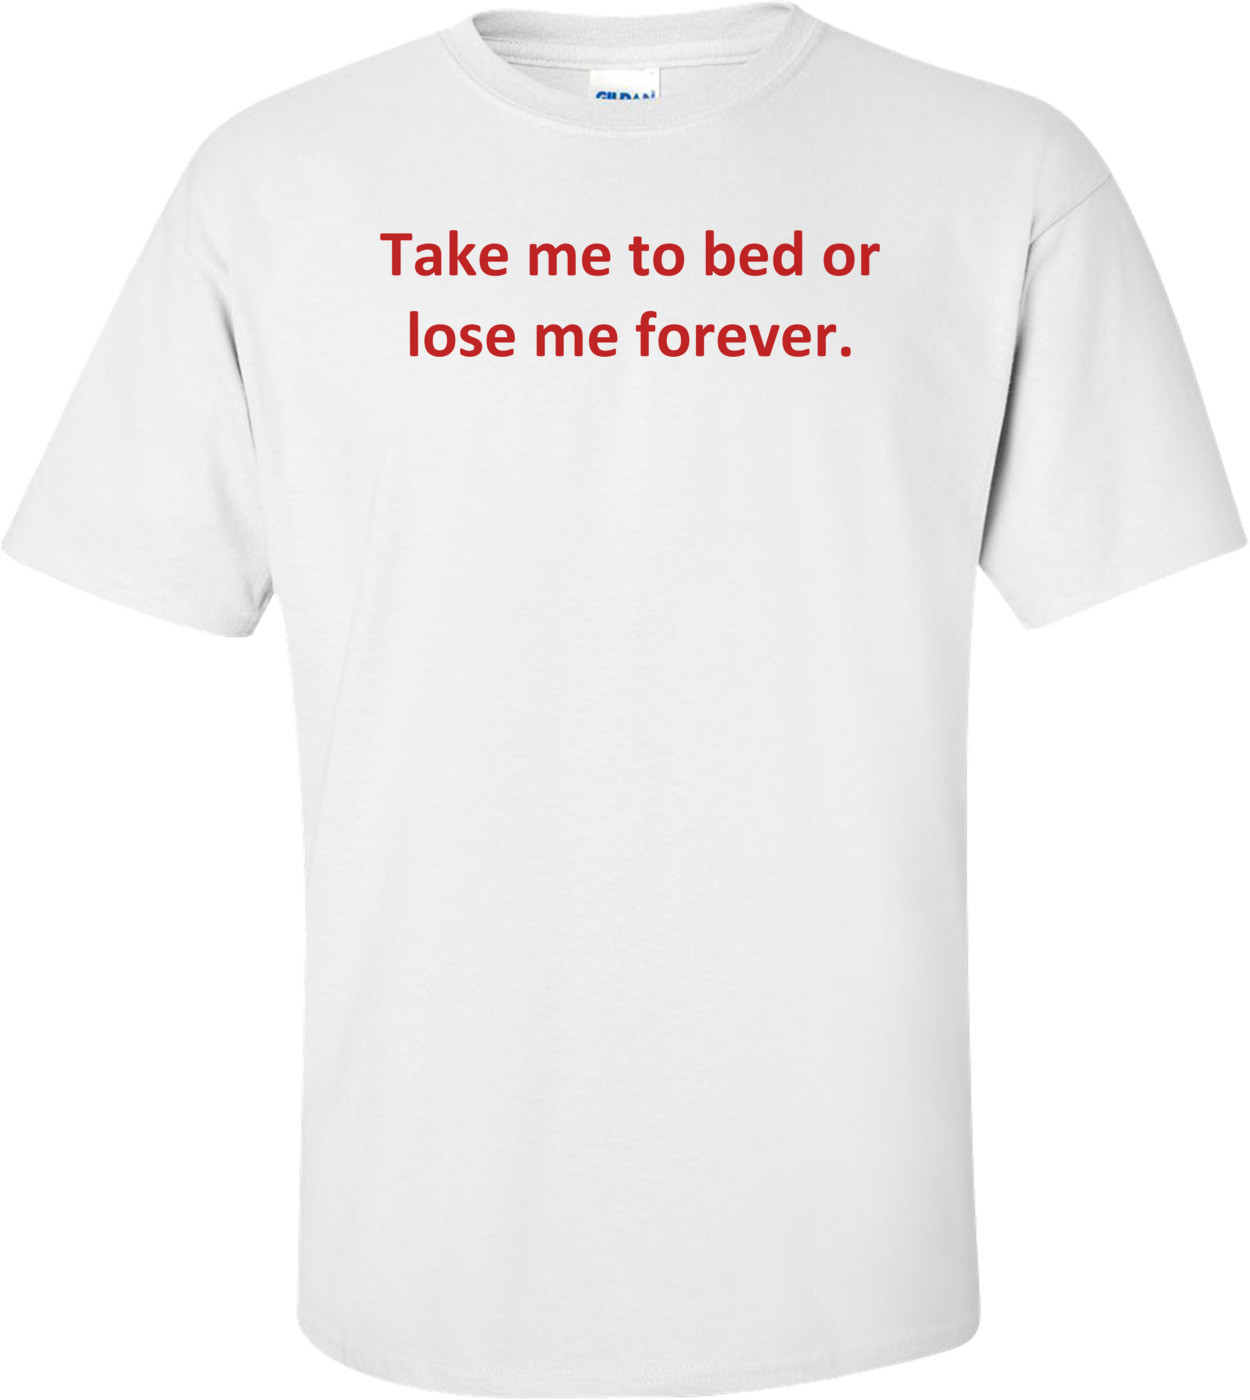 Take me to bed or lose me forever. Shirt